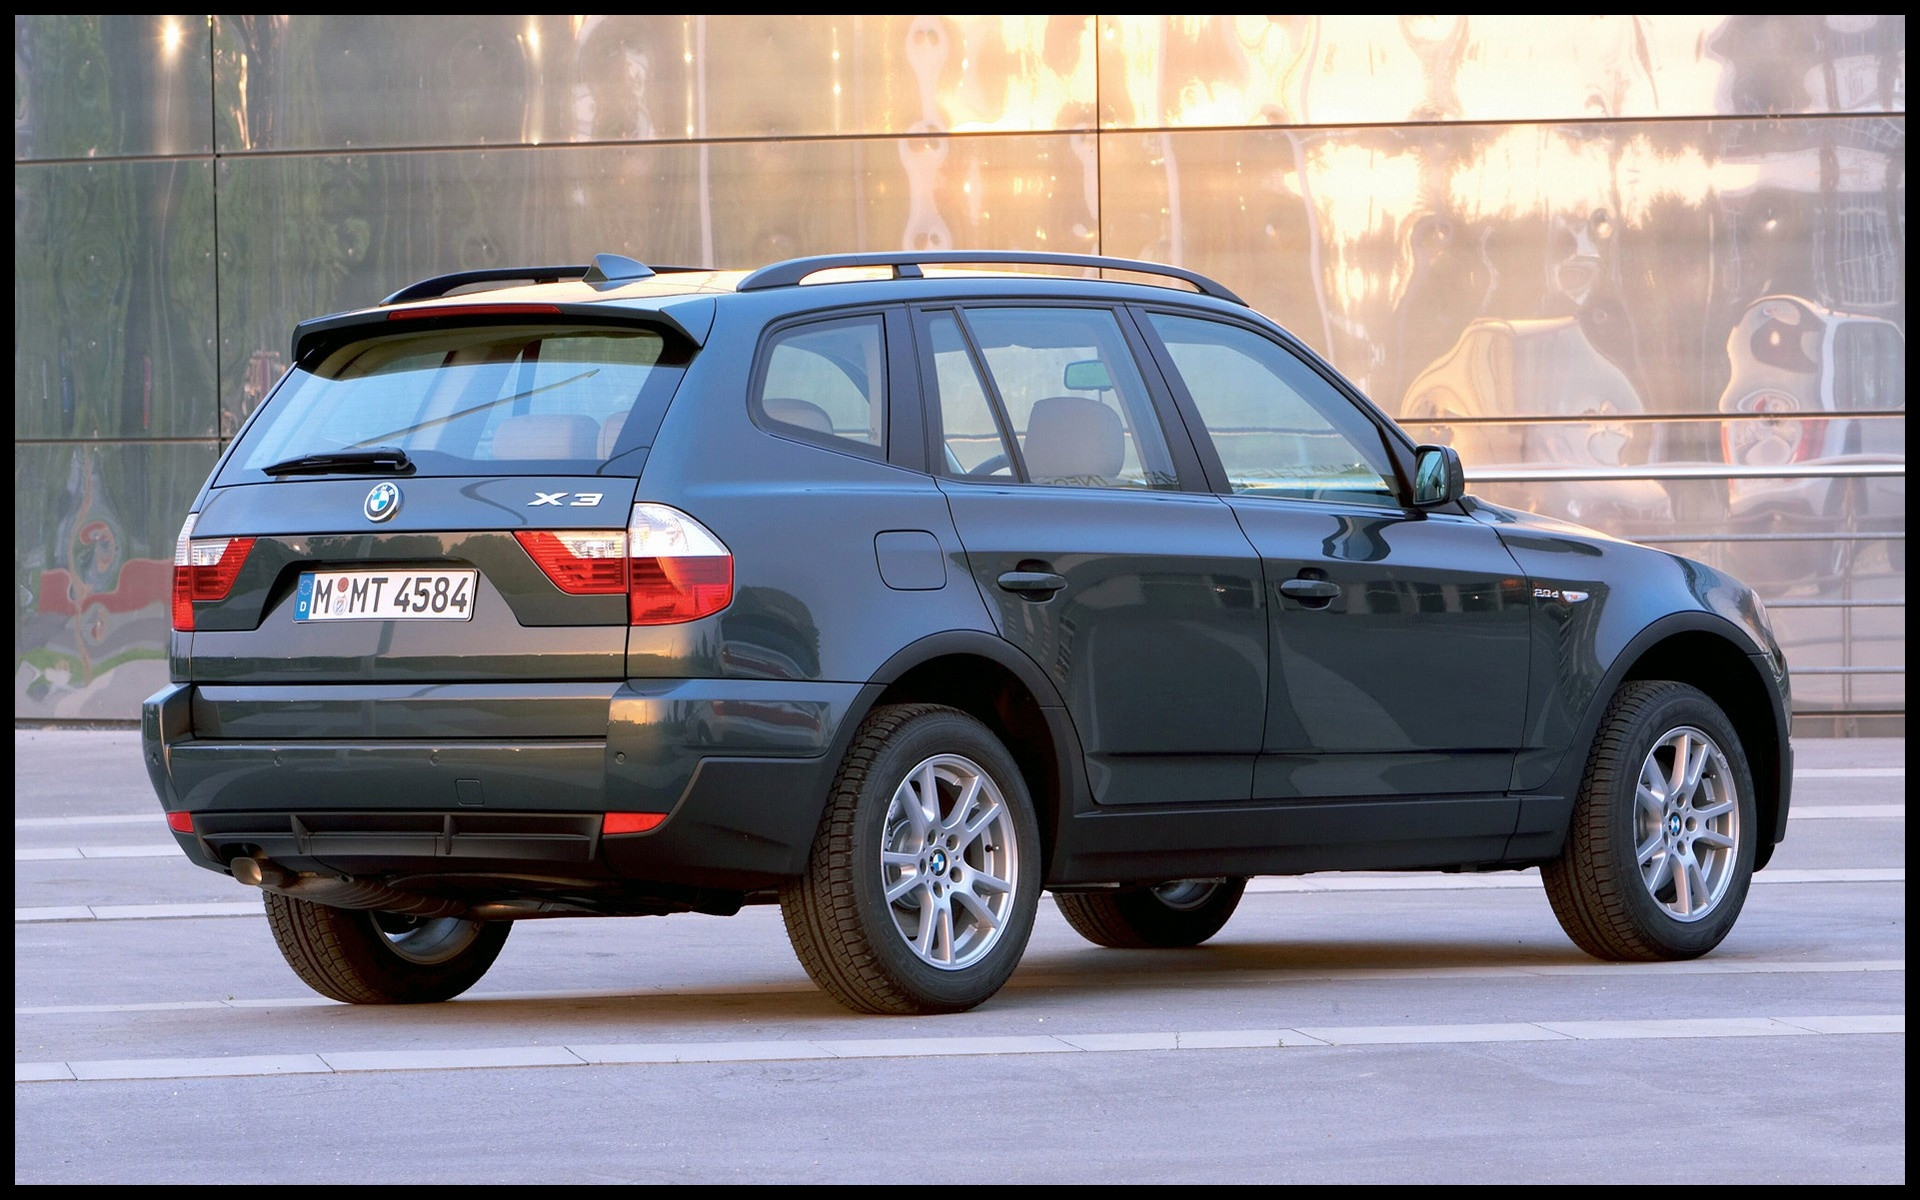 Car Image Moving Fresh Wallpapers That Move Awesome Bmw X3 2 0d 2007 Bmw E 21 Wallpaper